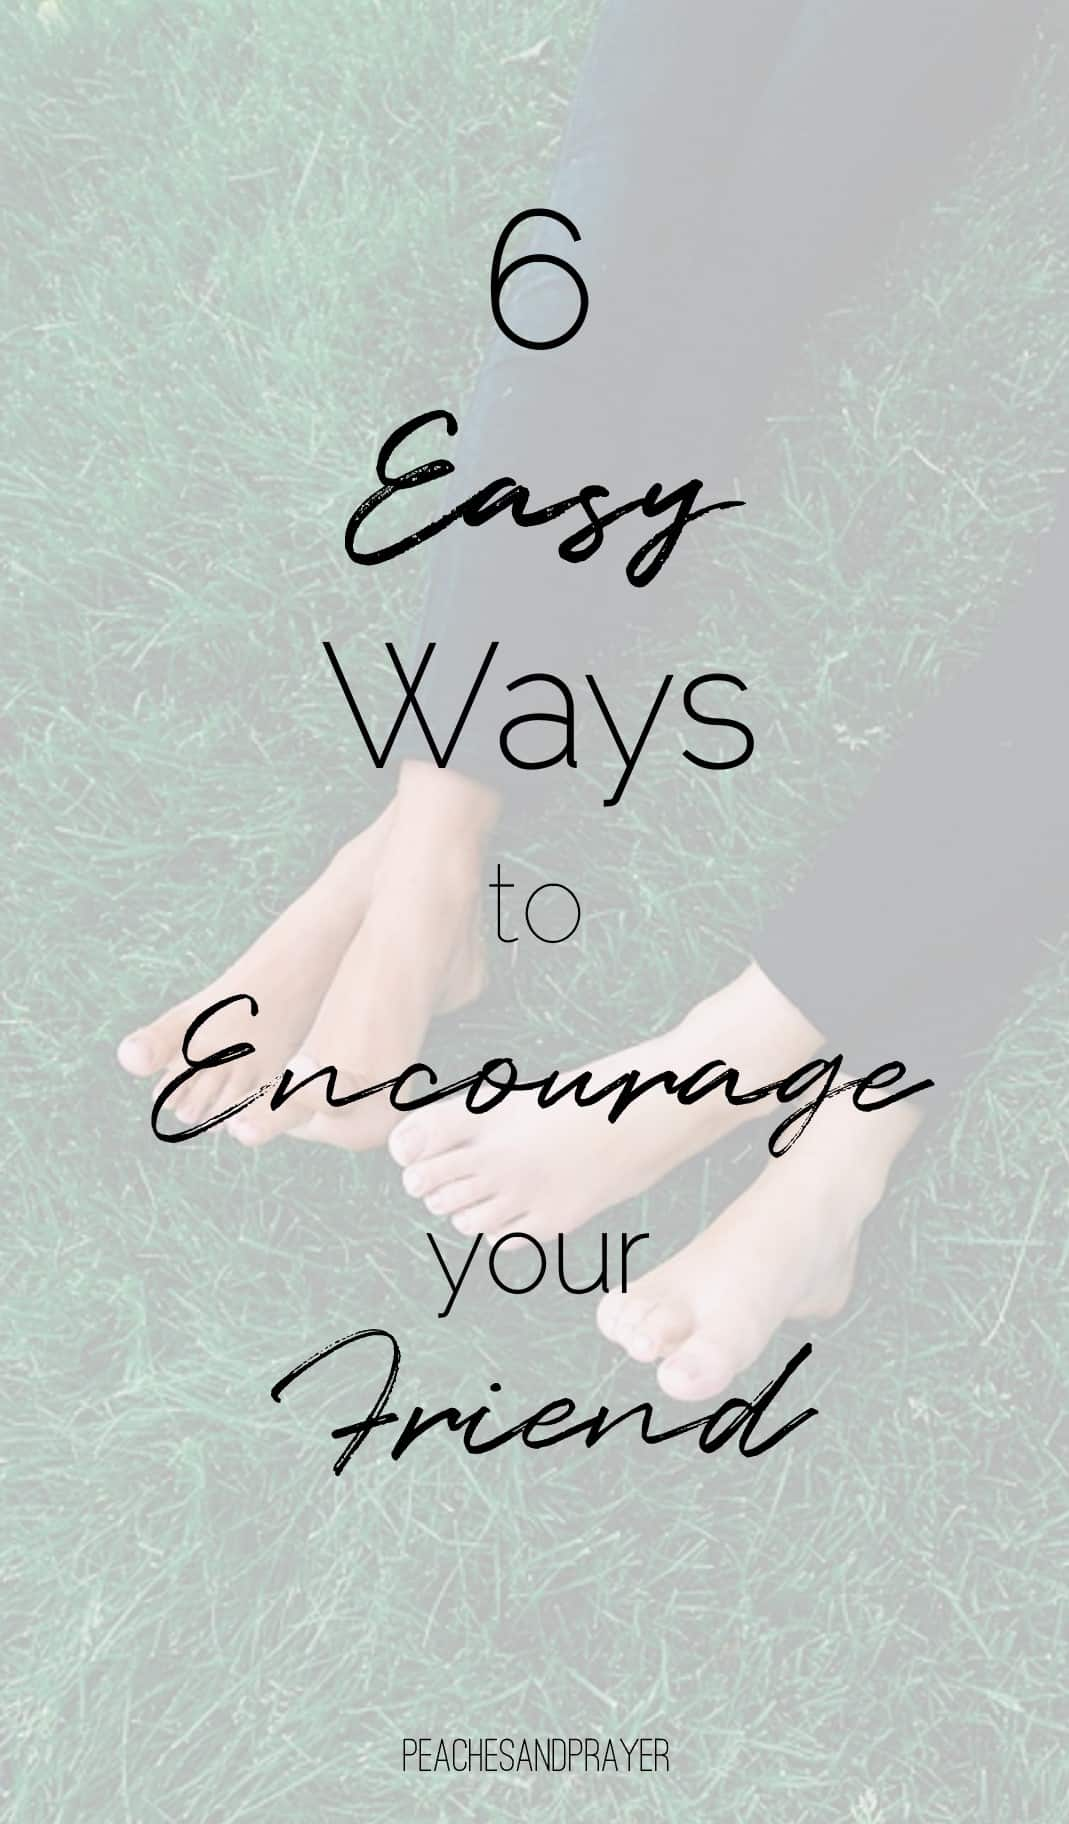 Ways to encourage a friend